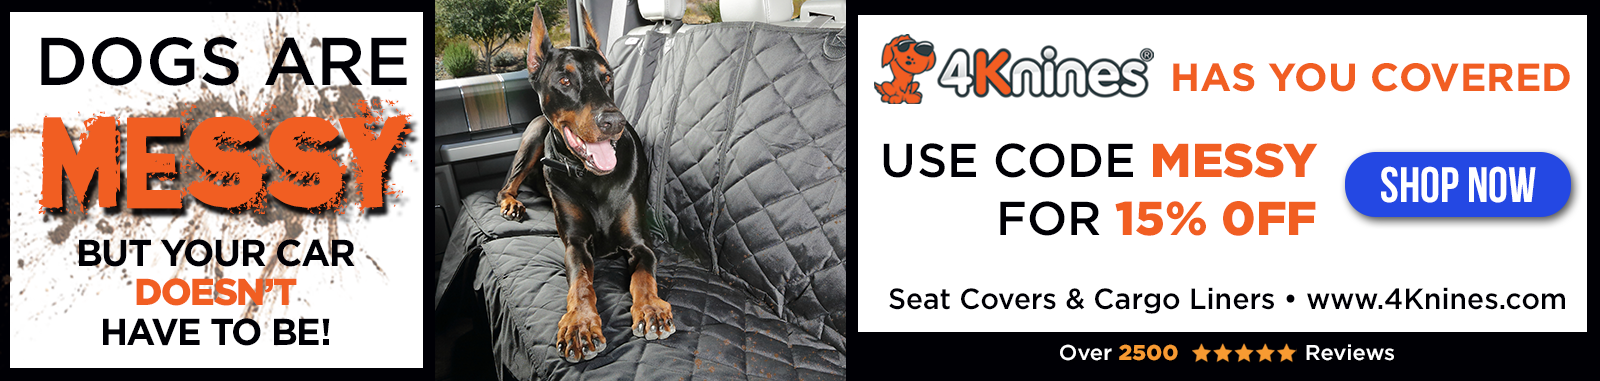 4Knines Car Seat Covers and Cargo Liners